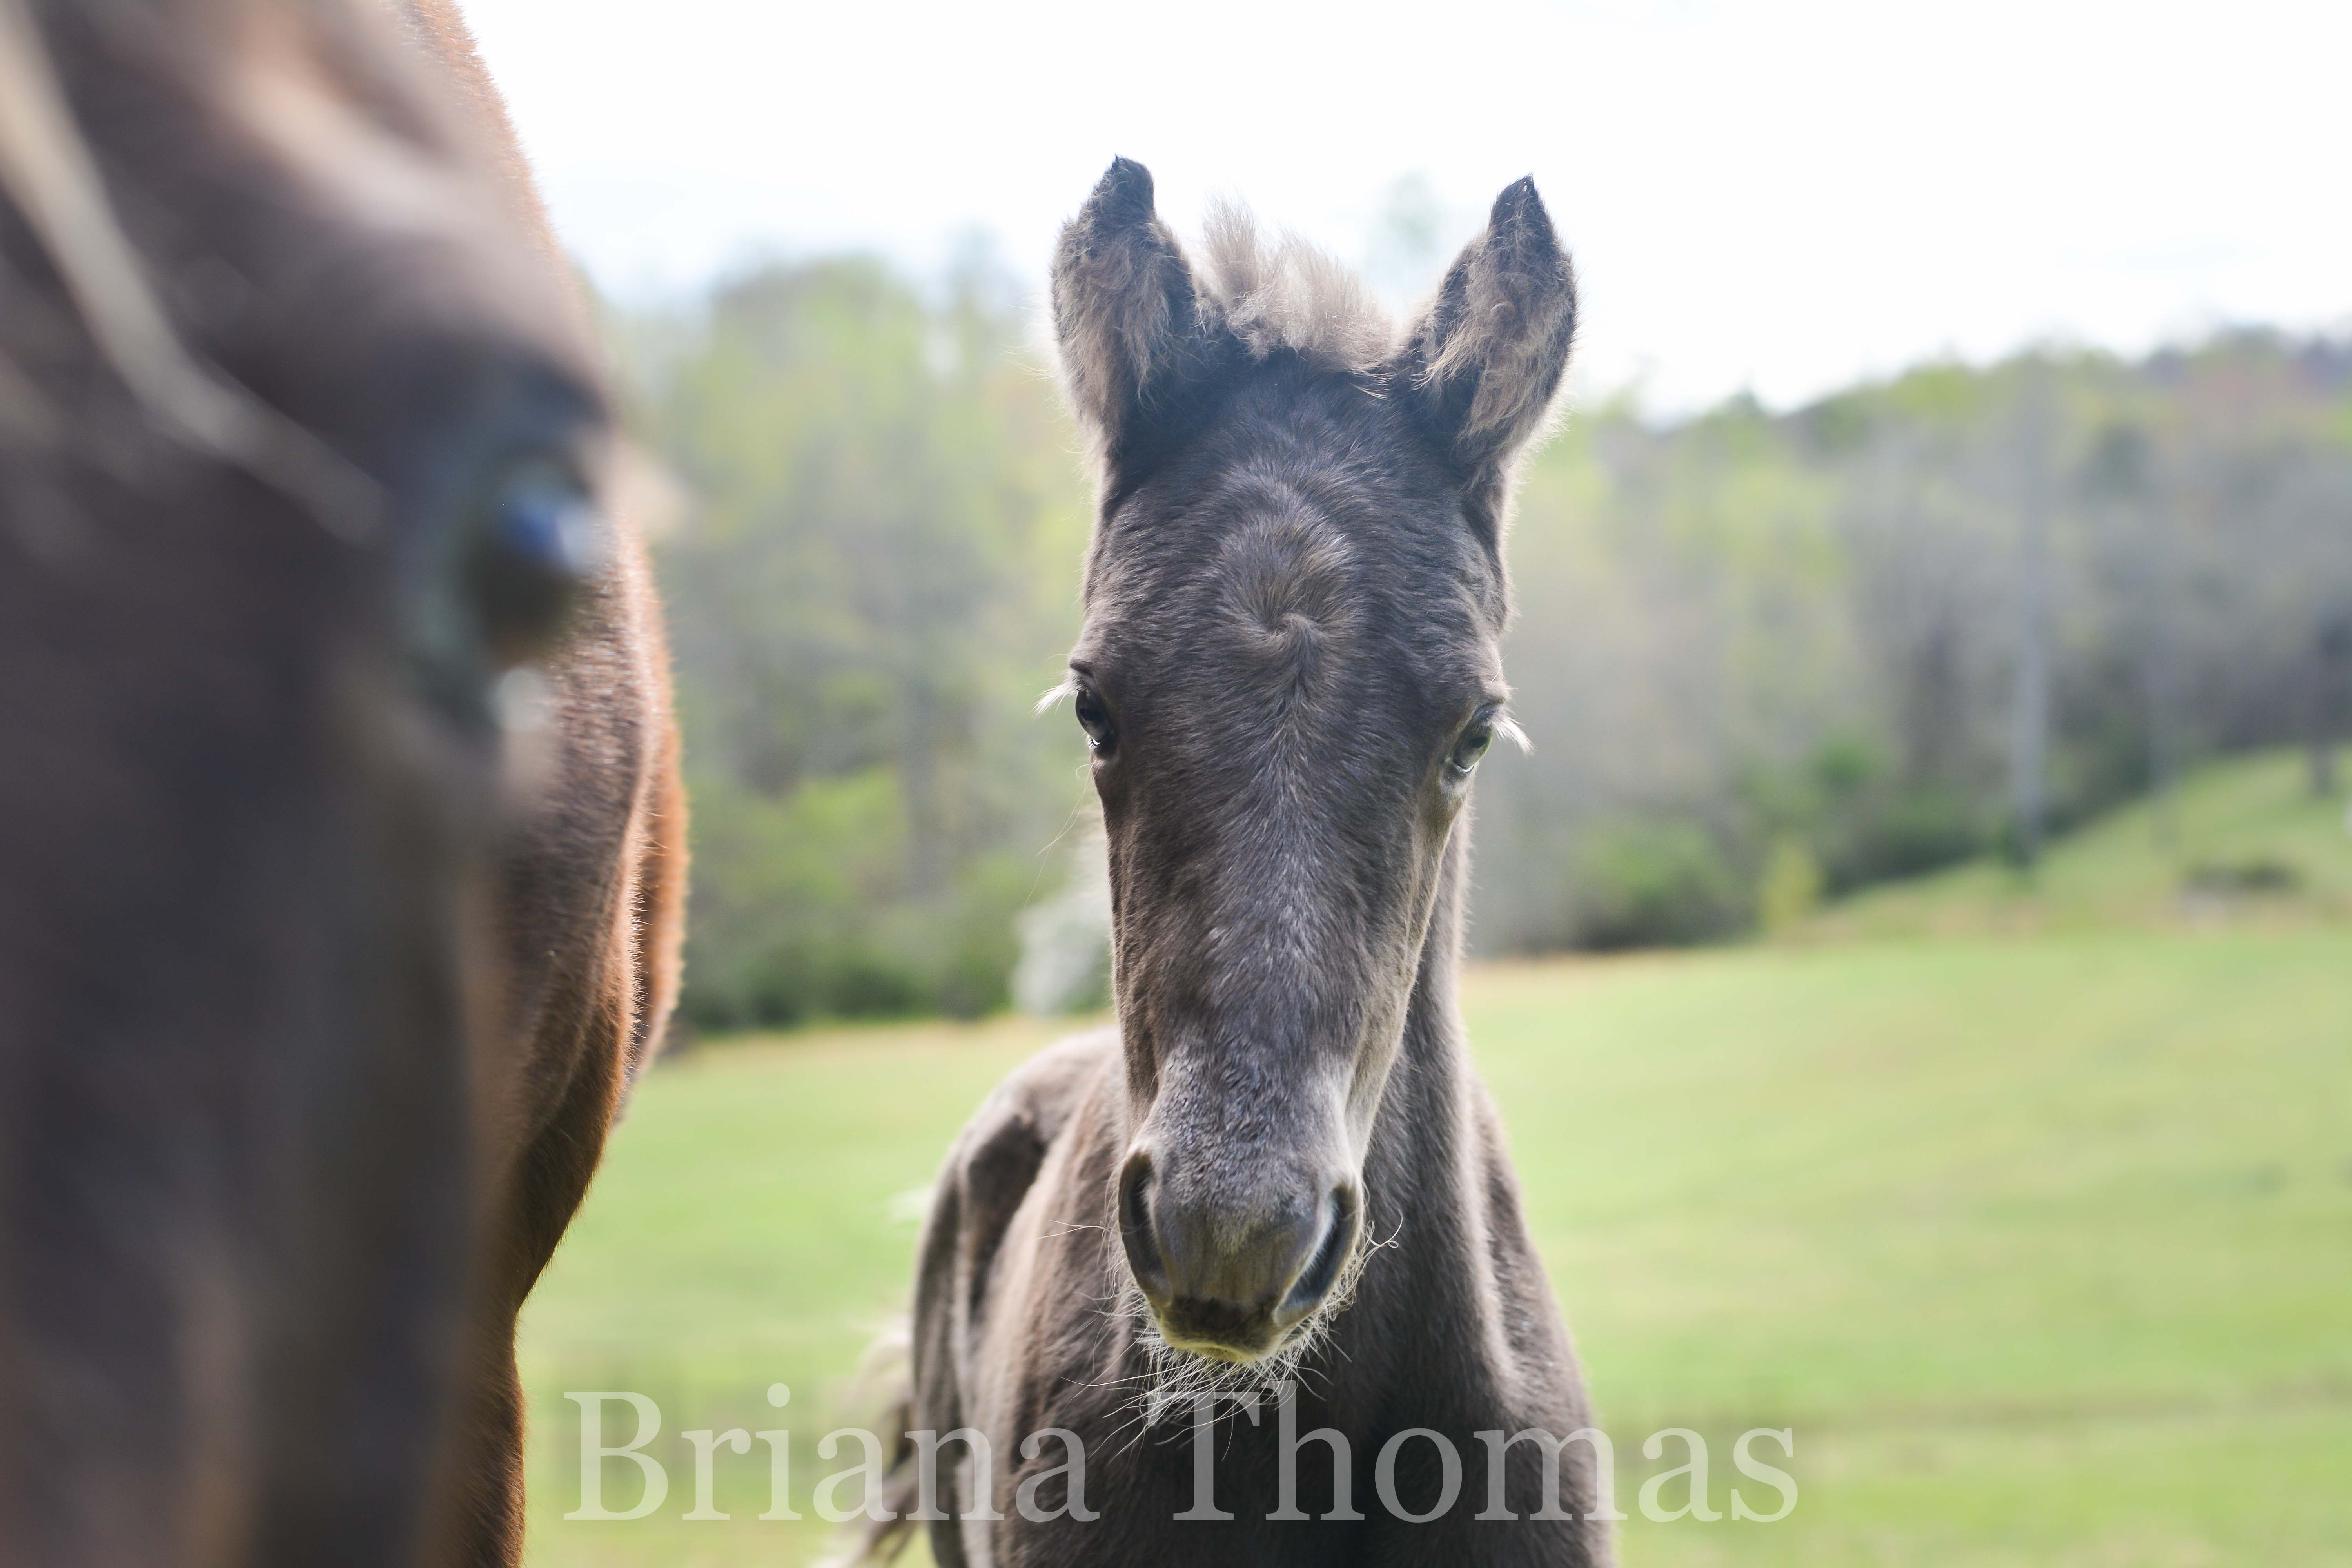 The first foal of 2017, Halal's Smoky Mountain Man, made his debut on April 4th. Rocky Mountain Man x Kilburn's Sundown Molley x Kilburn's Chocolate Sundown